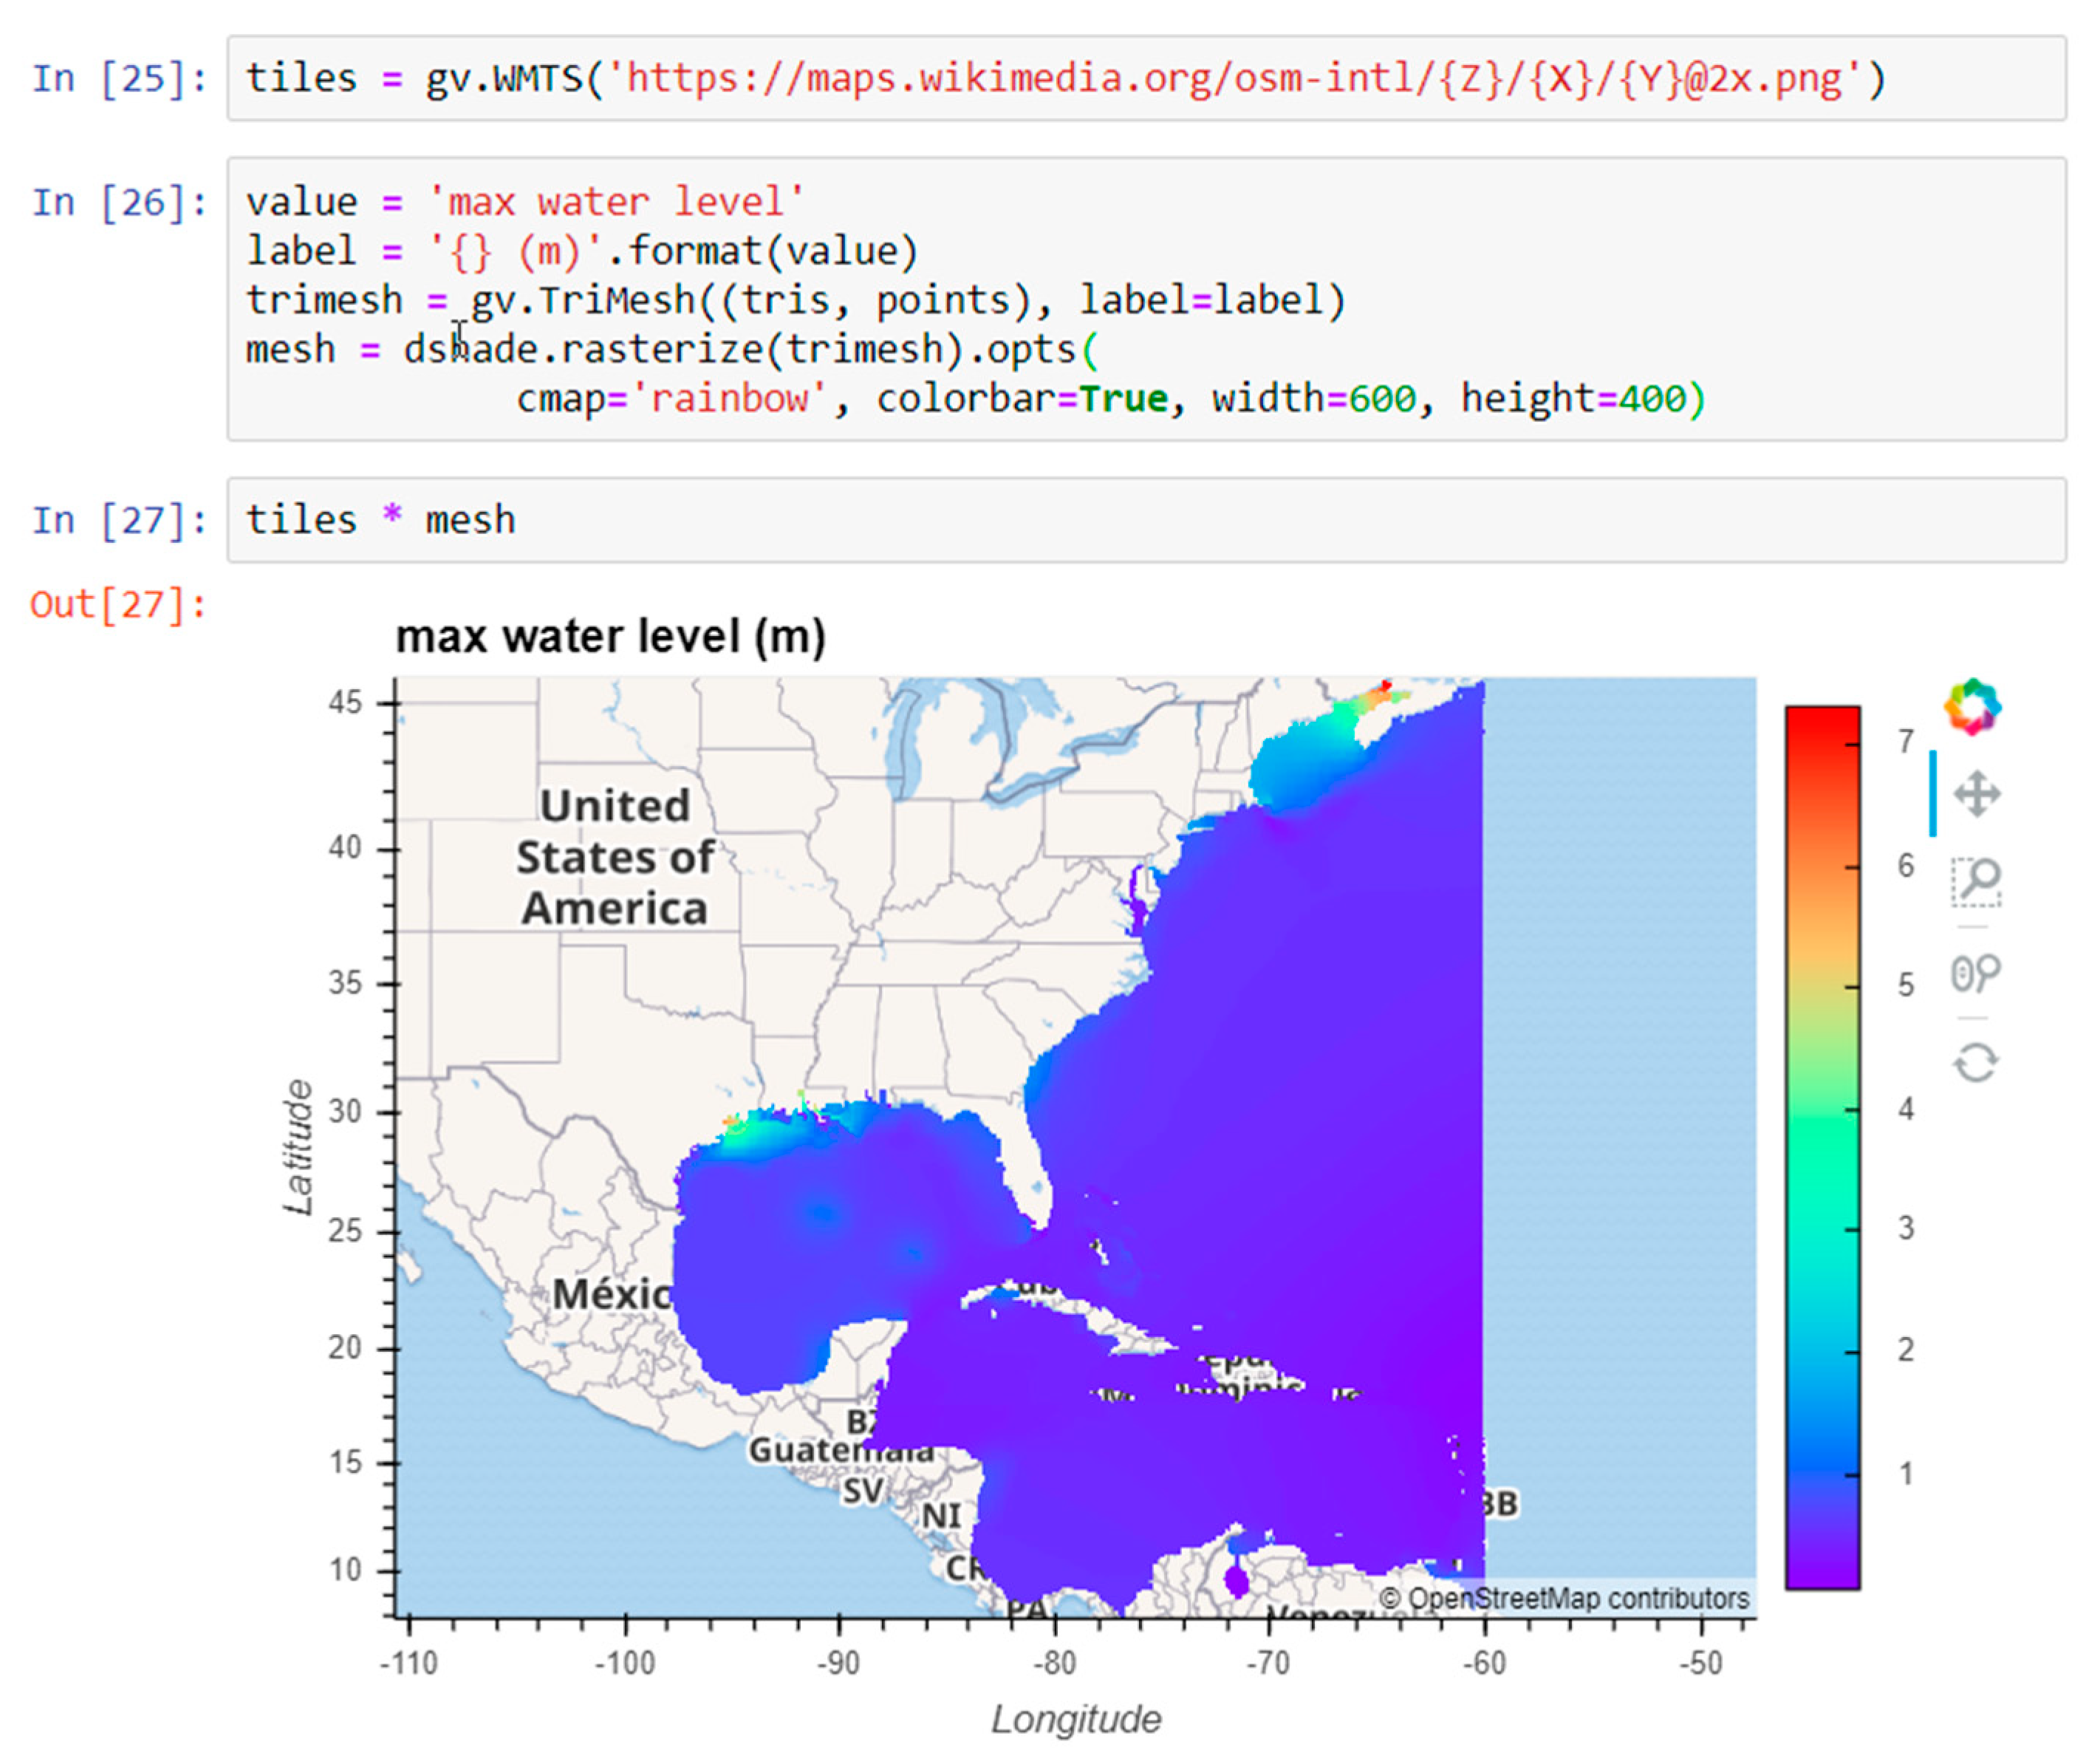 JMSE | Free Full-Text | Analysis and Visualization of Coastal Ocean